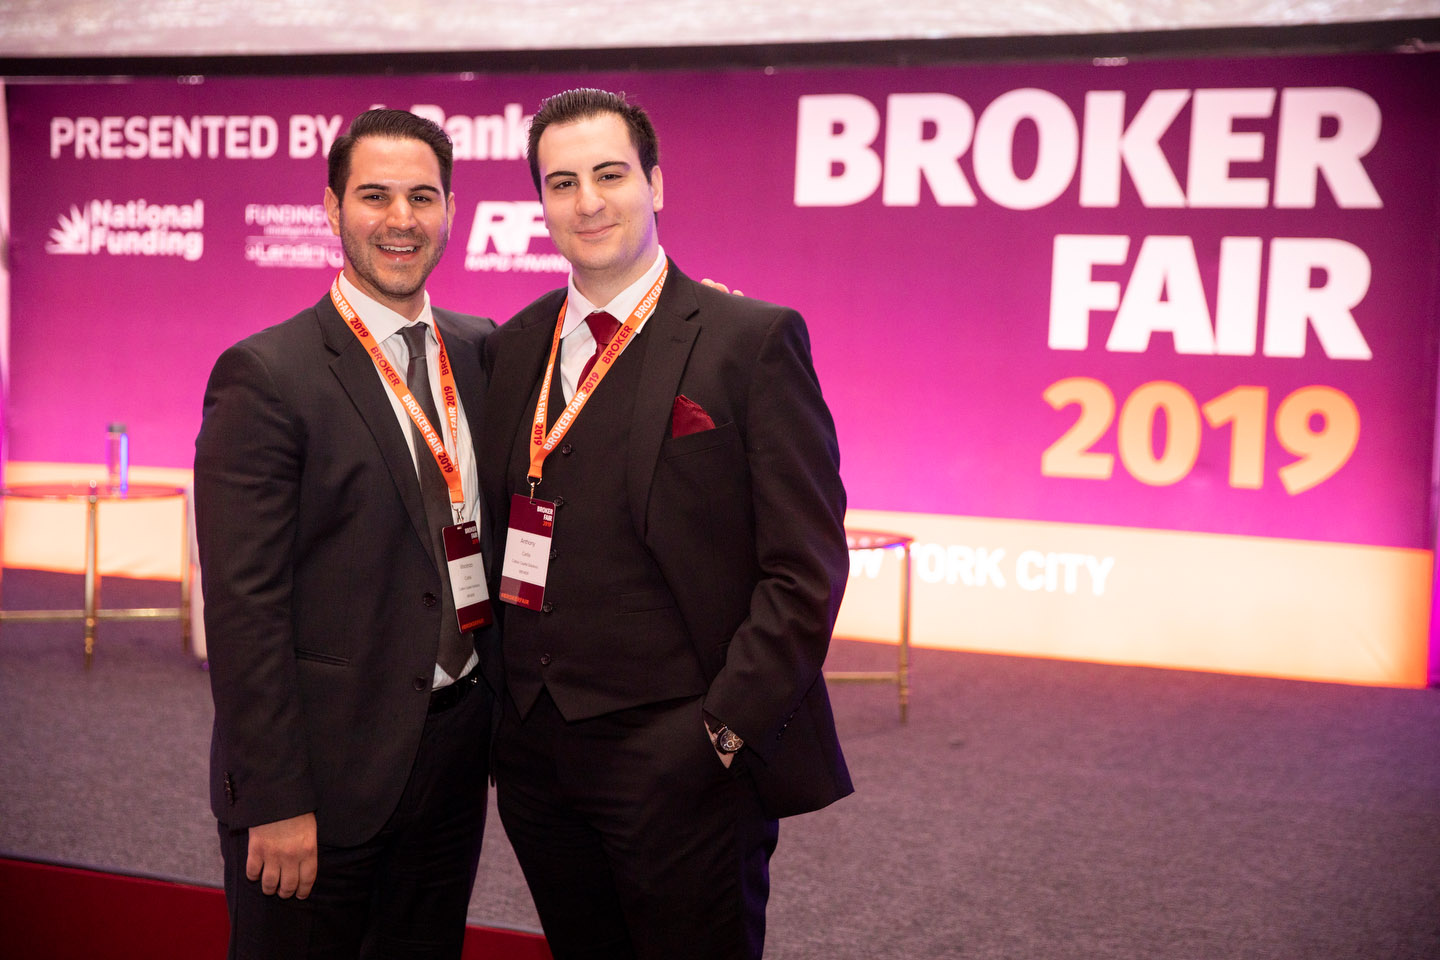 Broker Fair 2019 - Presented by deBanked - 203